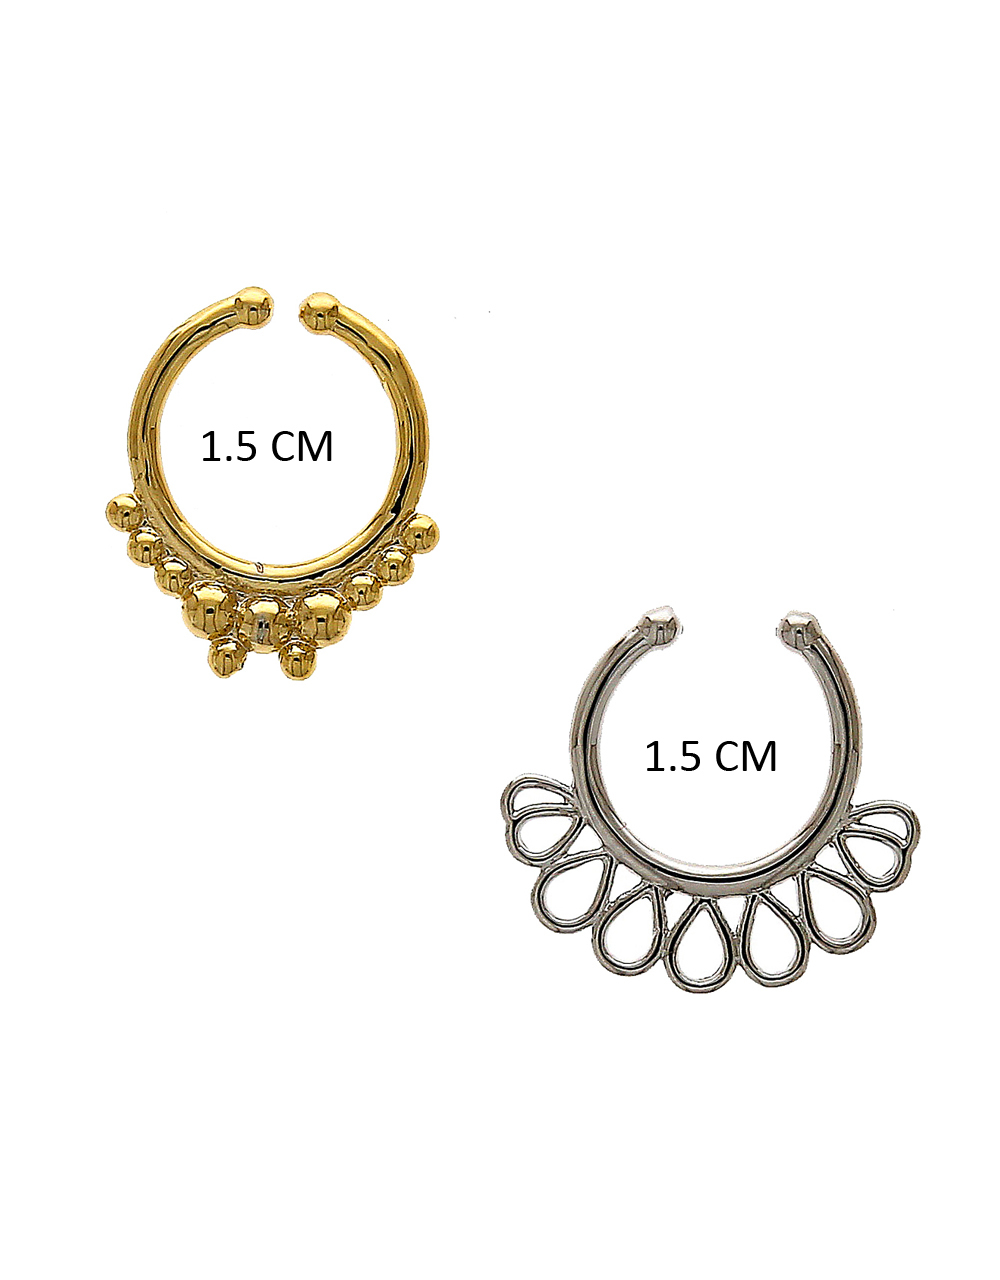 Floral Design Gold-Silver Combination Nose Stud